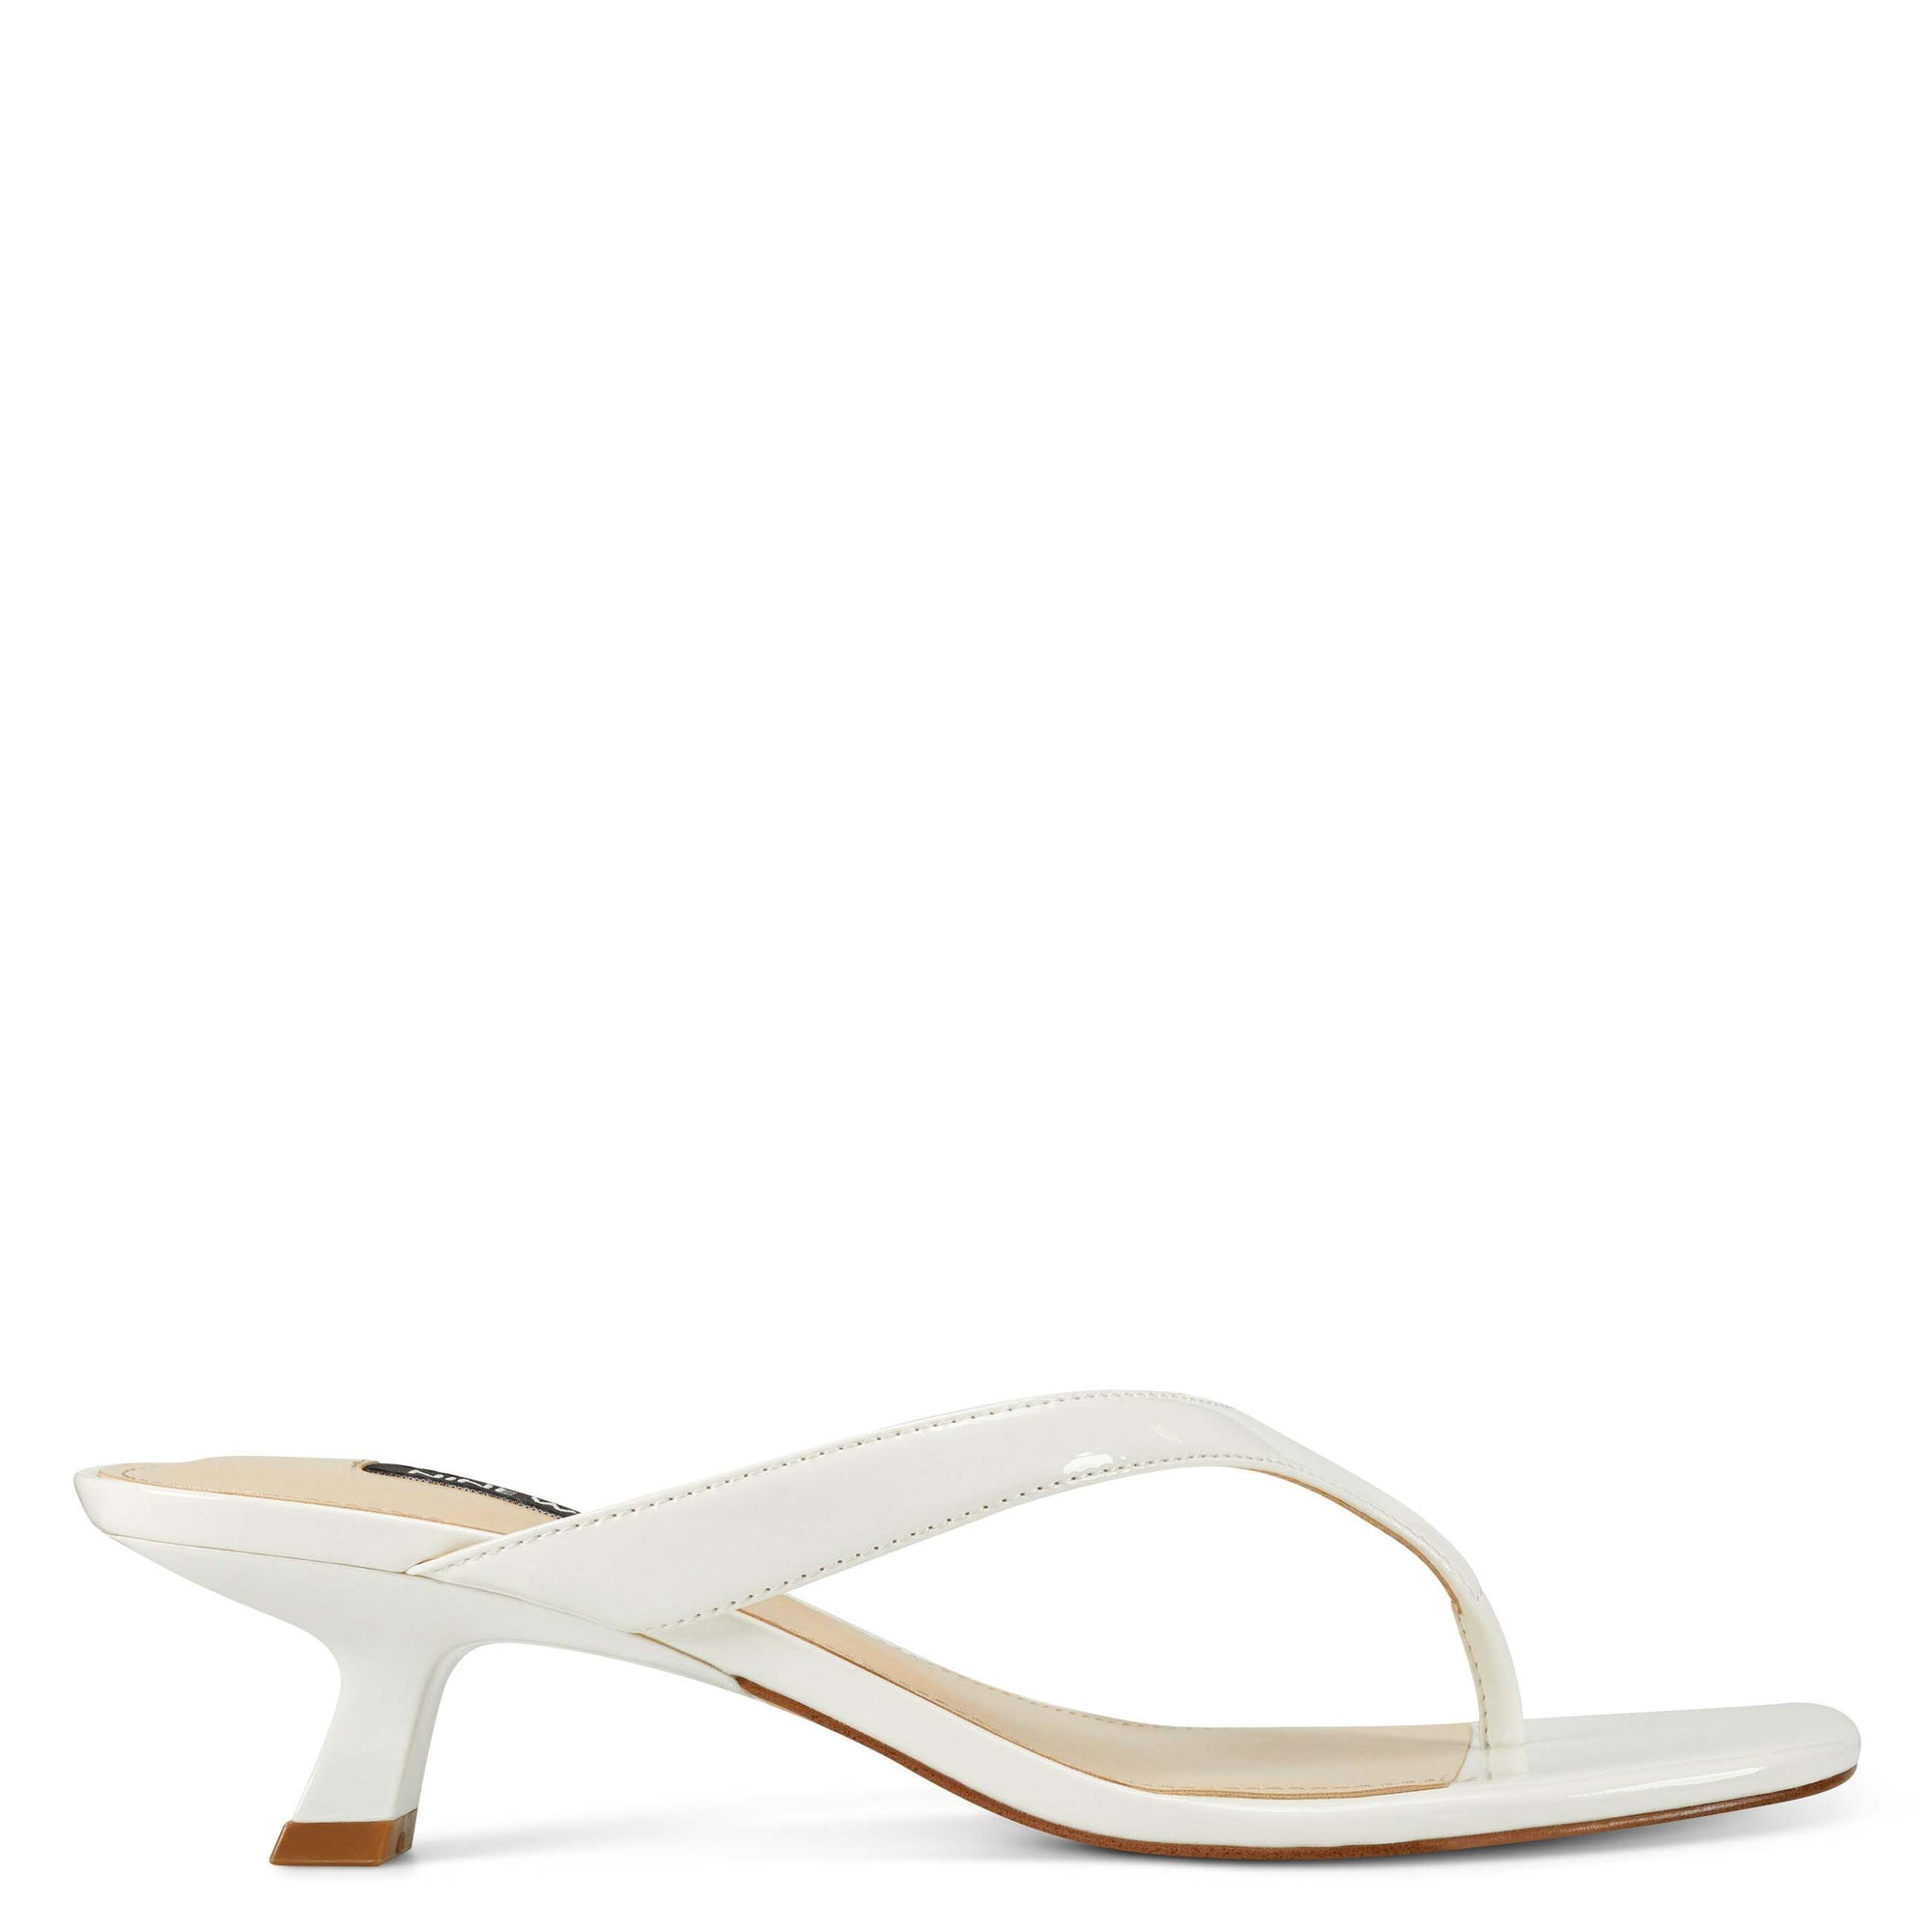 manold-heeled-thong-sandals-in-white-patent